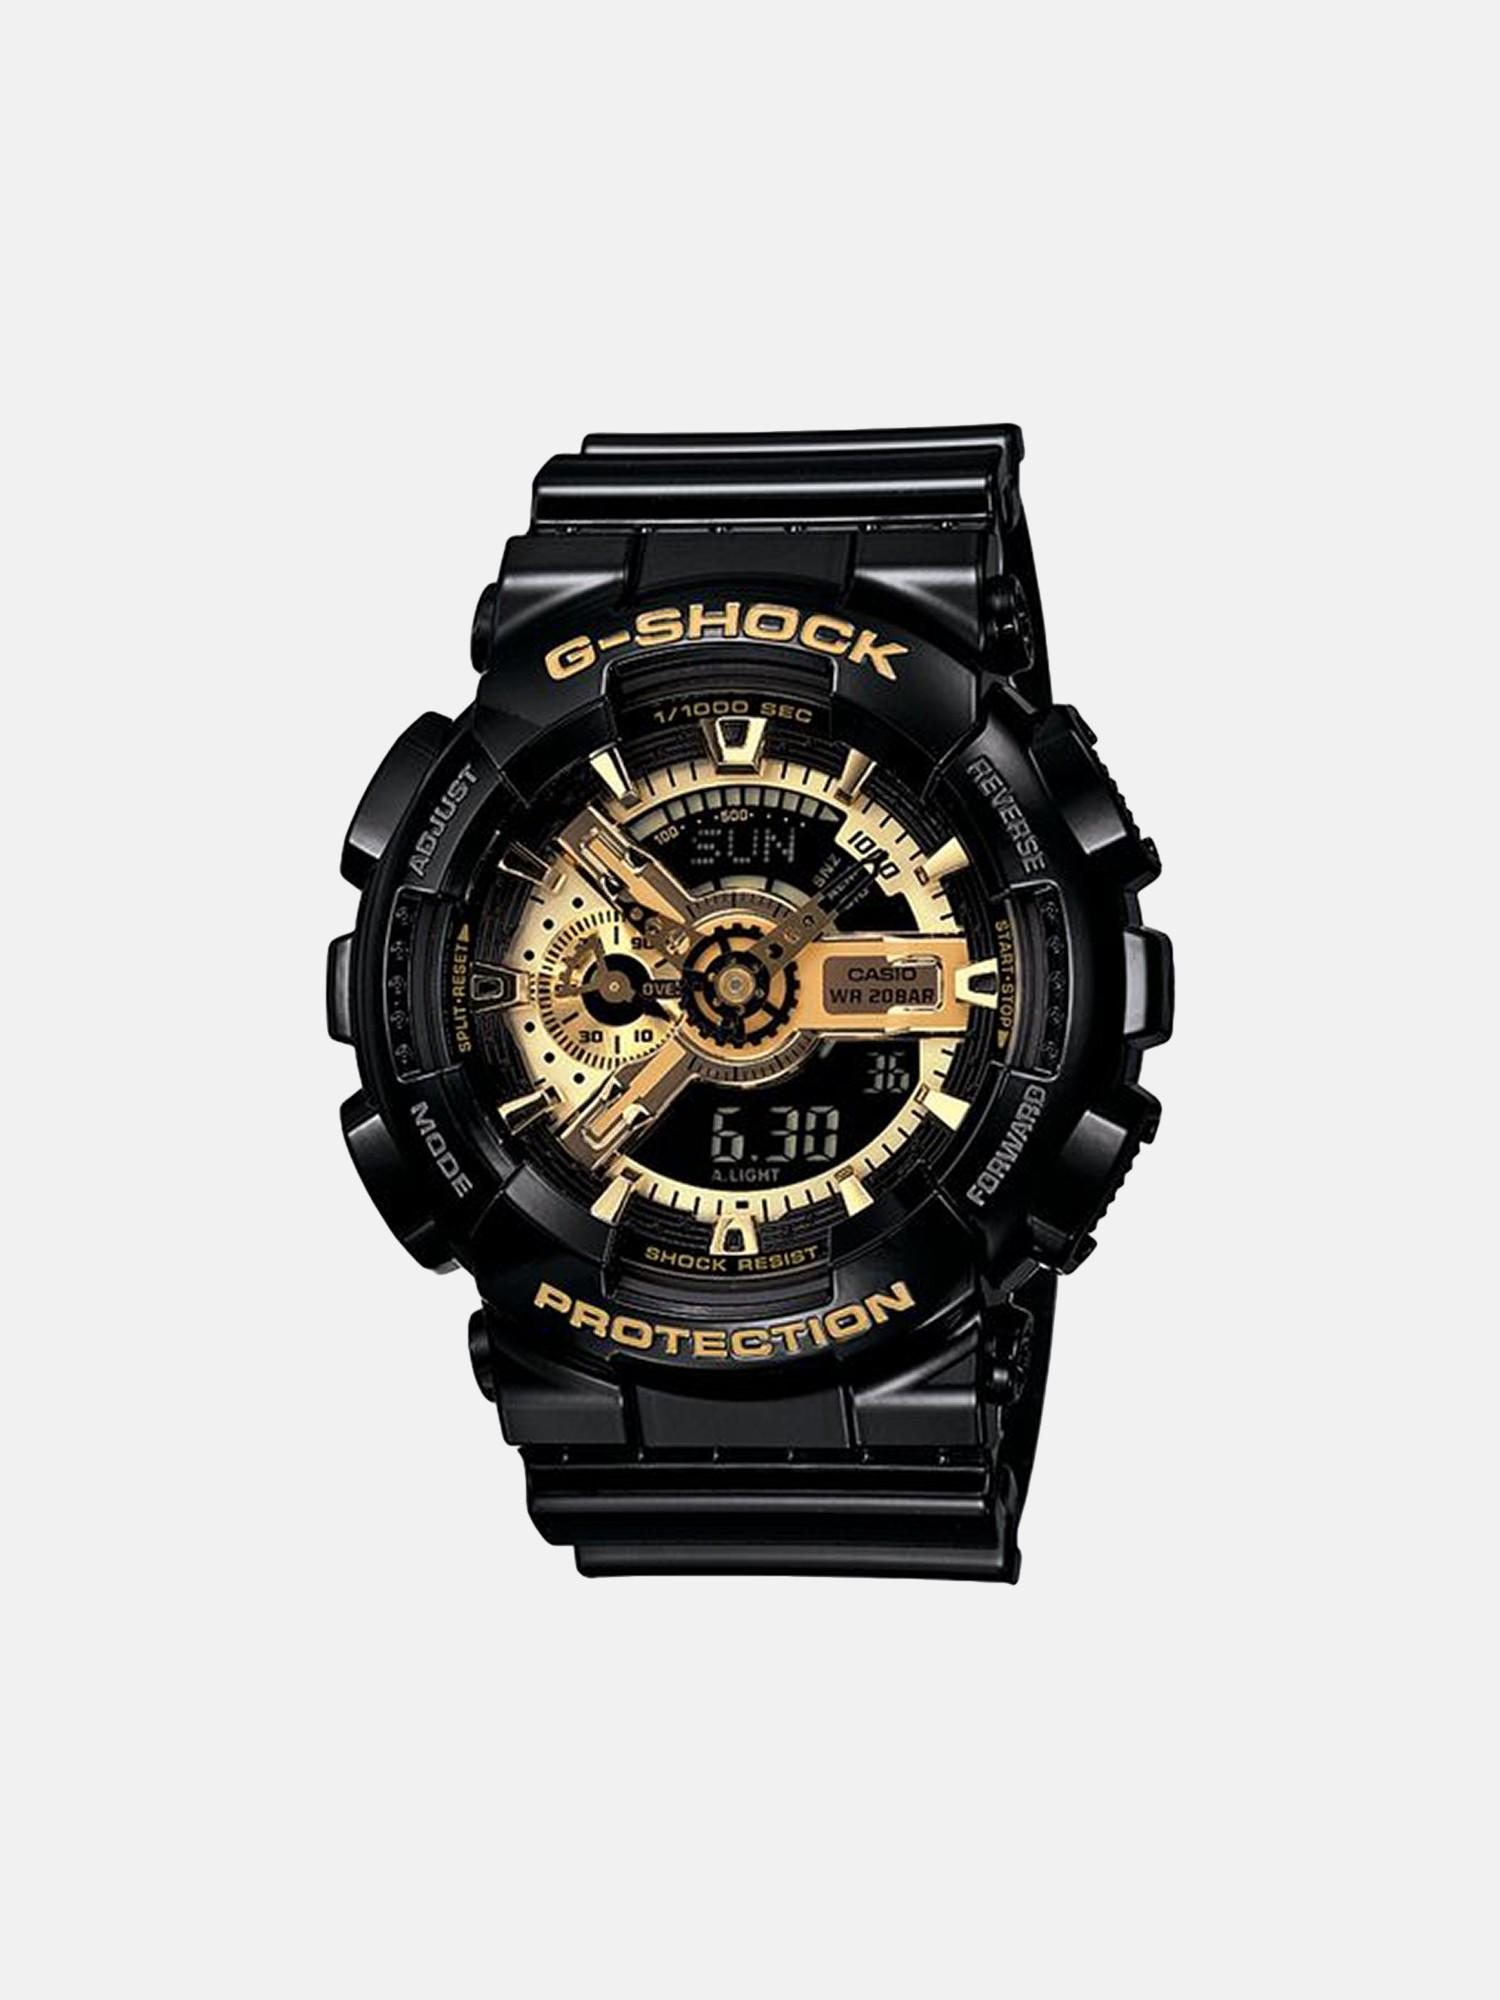 a h lesson zero case lug ideas fresh mens for to watches watch small vs of wrists hyt fashion sizes awesome graphics from s